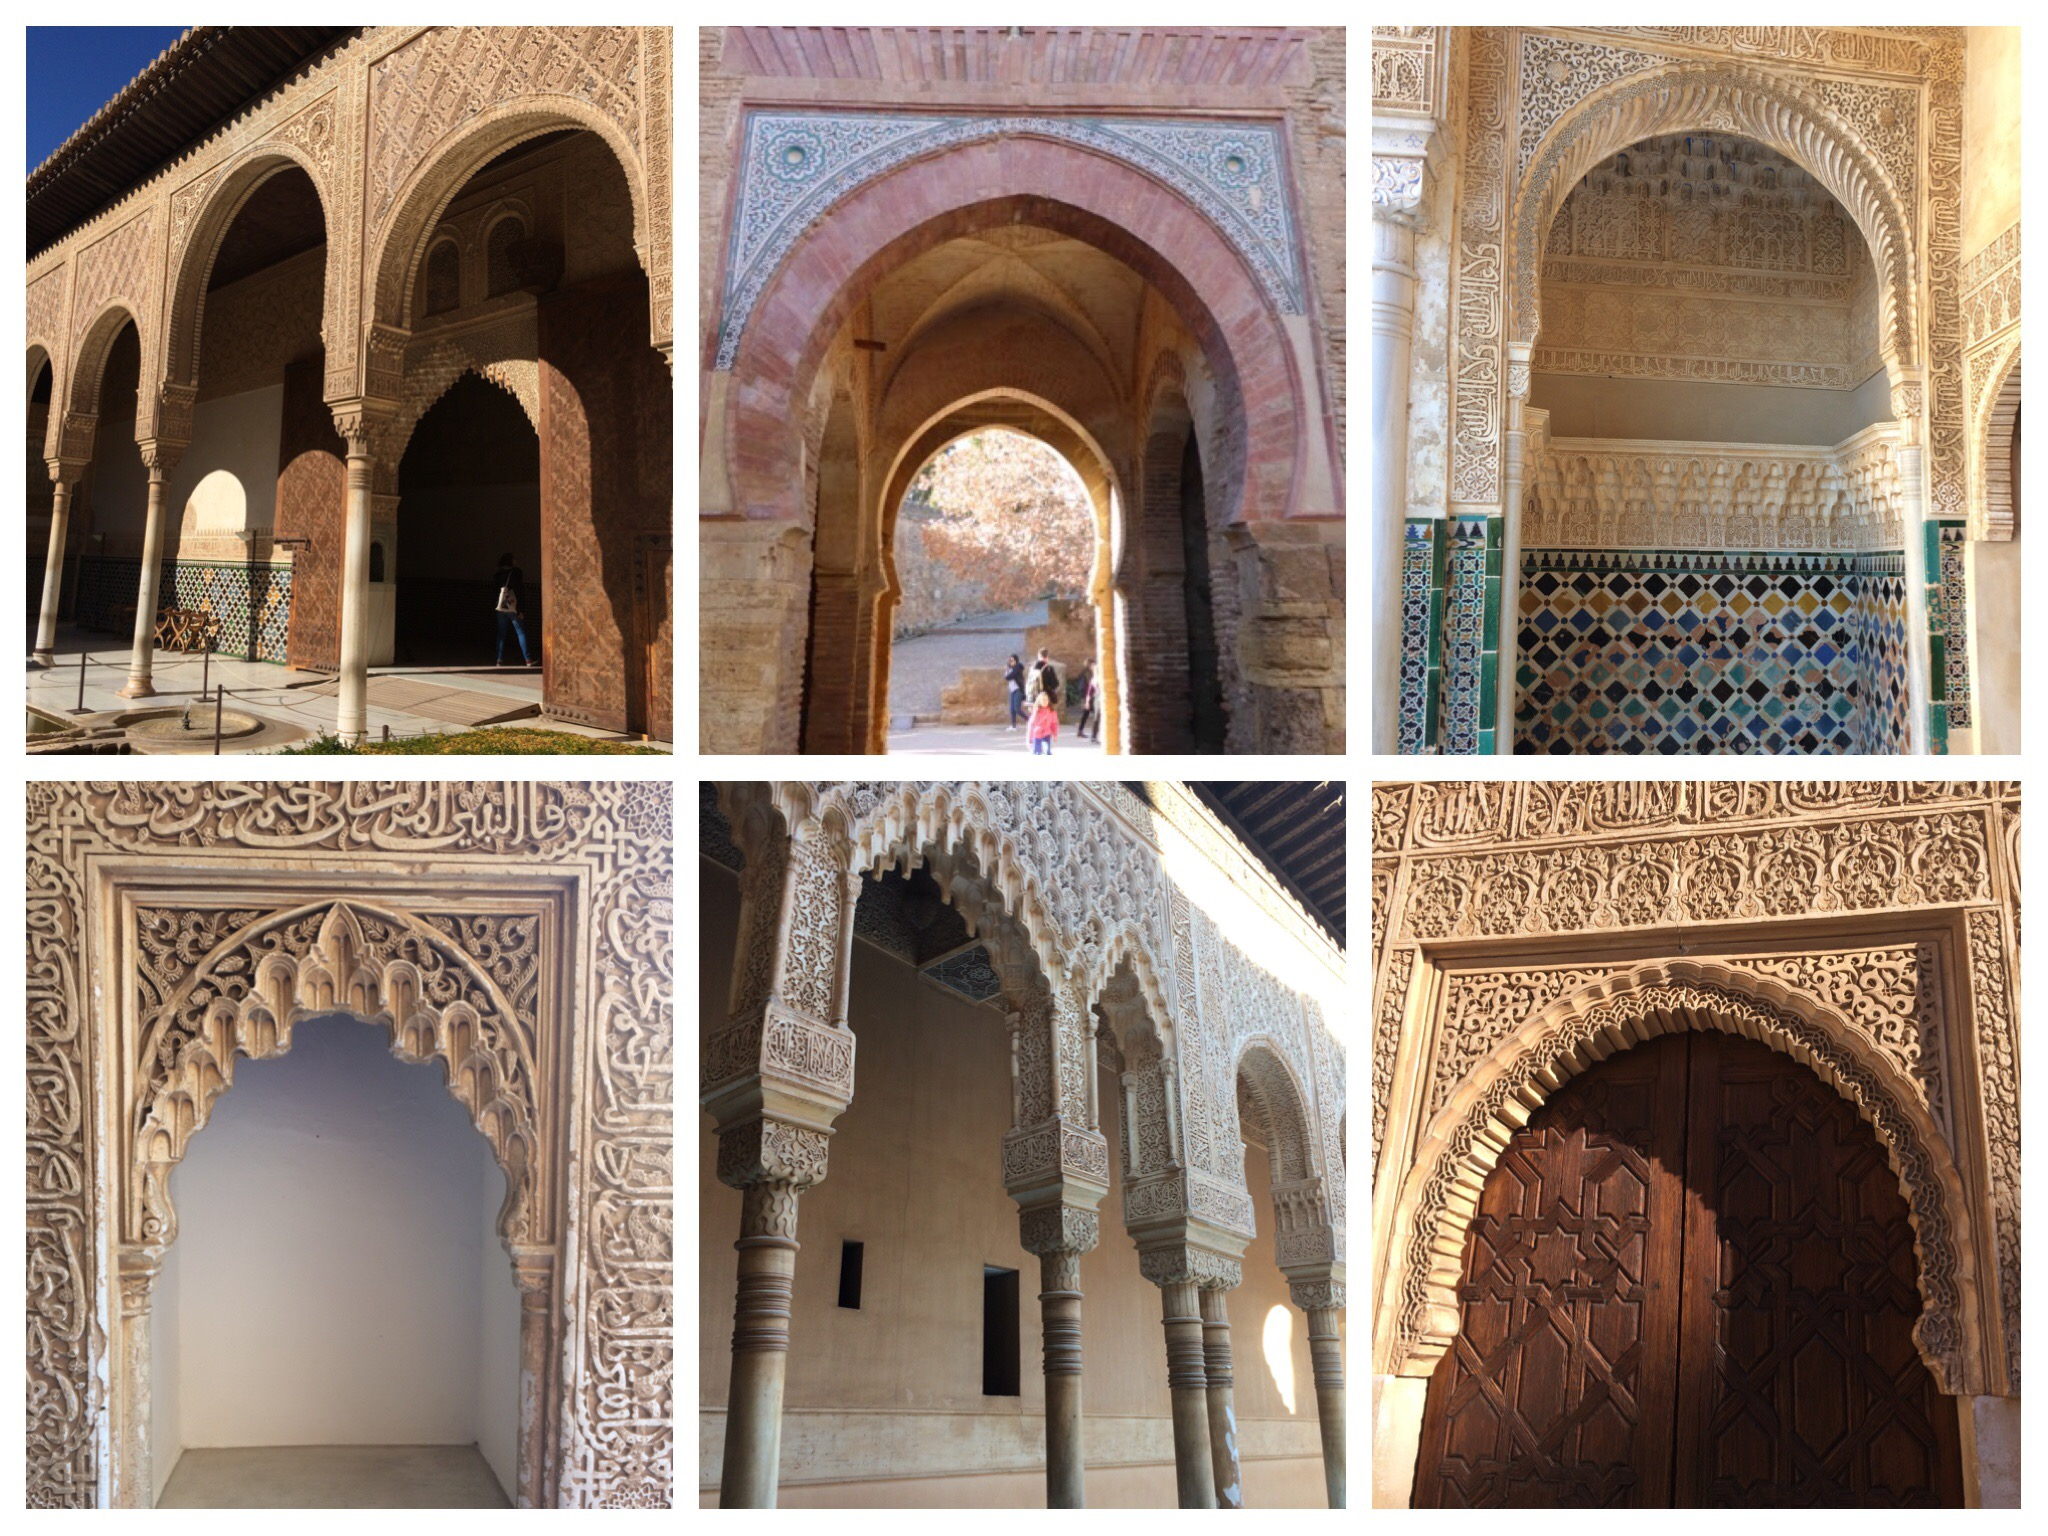 Alhambra Granada Spain - beautiful archways